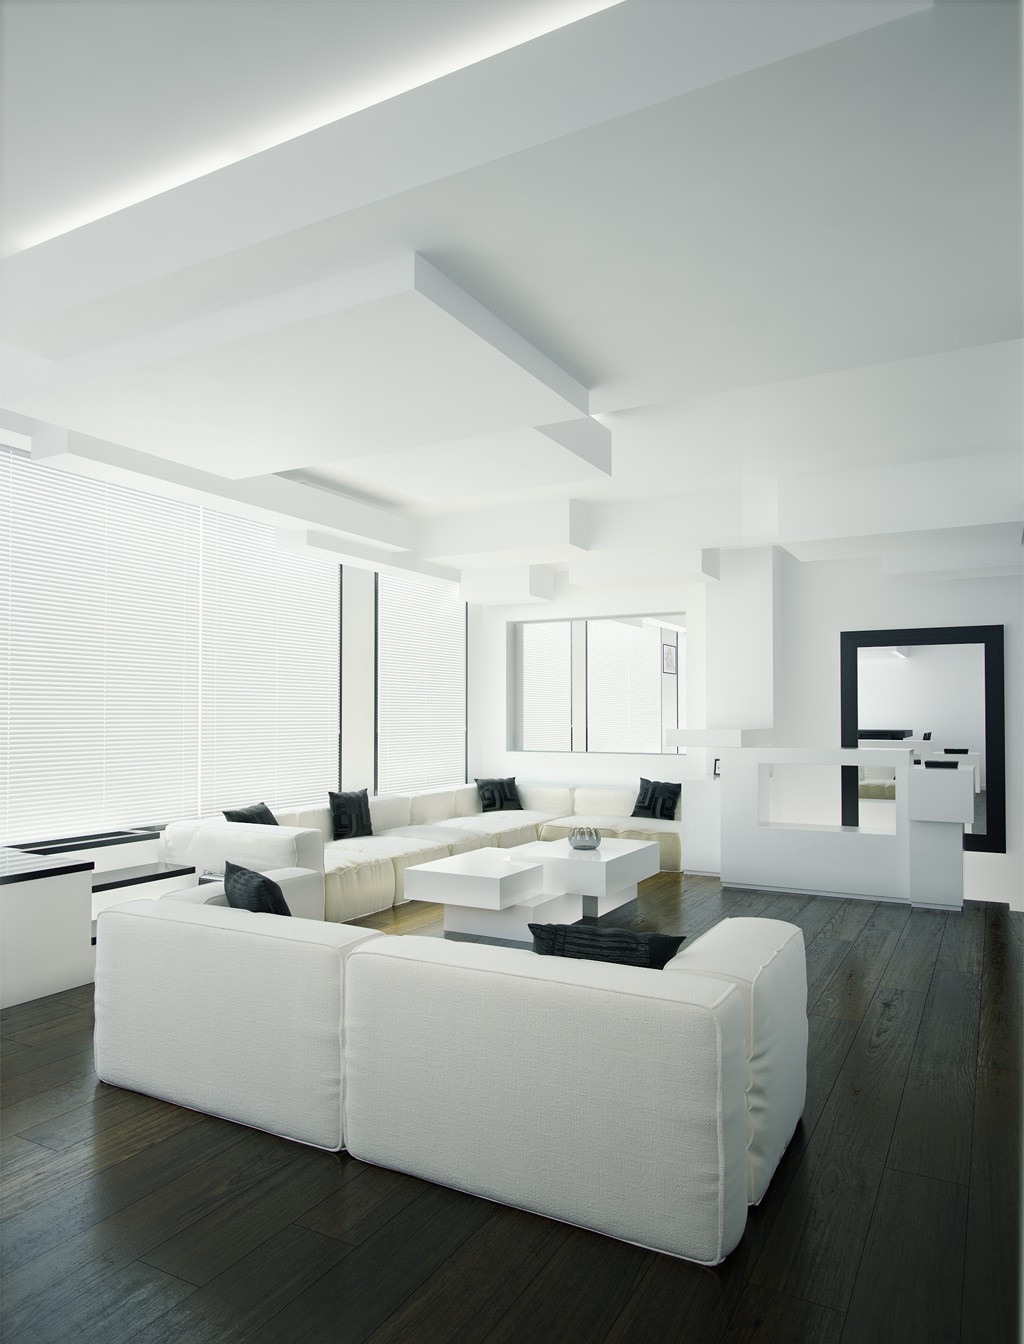 Contemporary Living Room By Sarah Stacey Interior Design: Light-Filled Contemporary Living Rooms